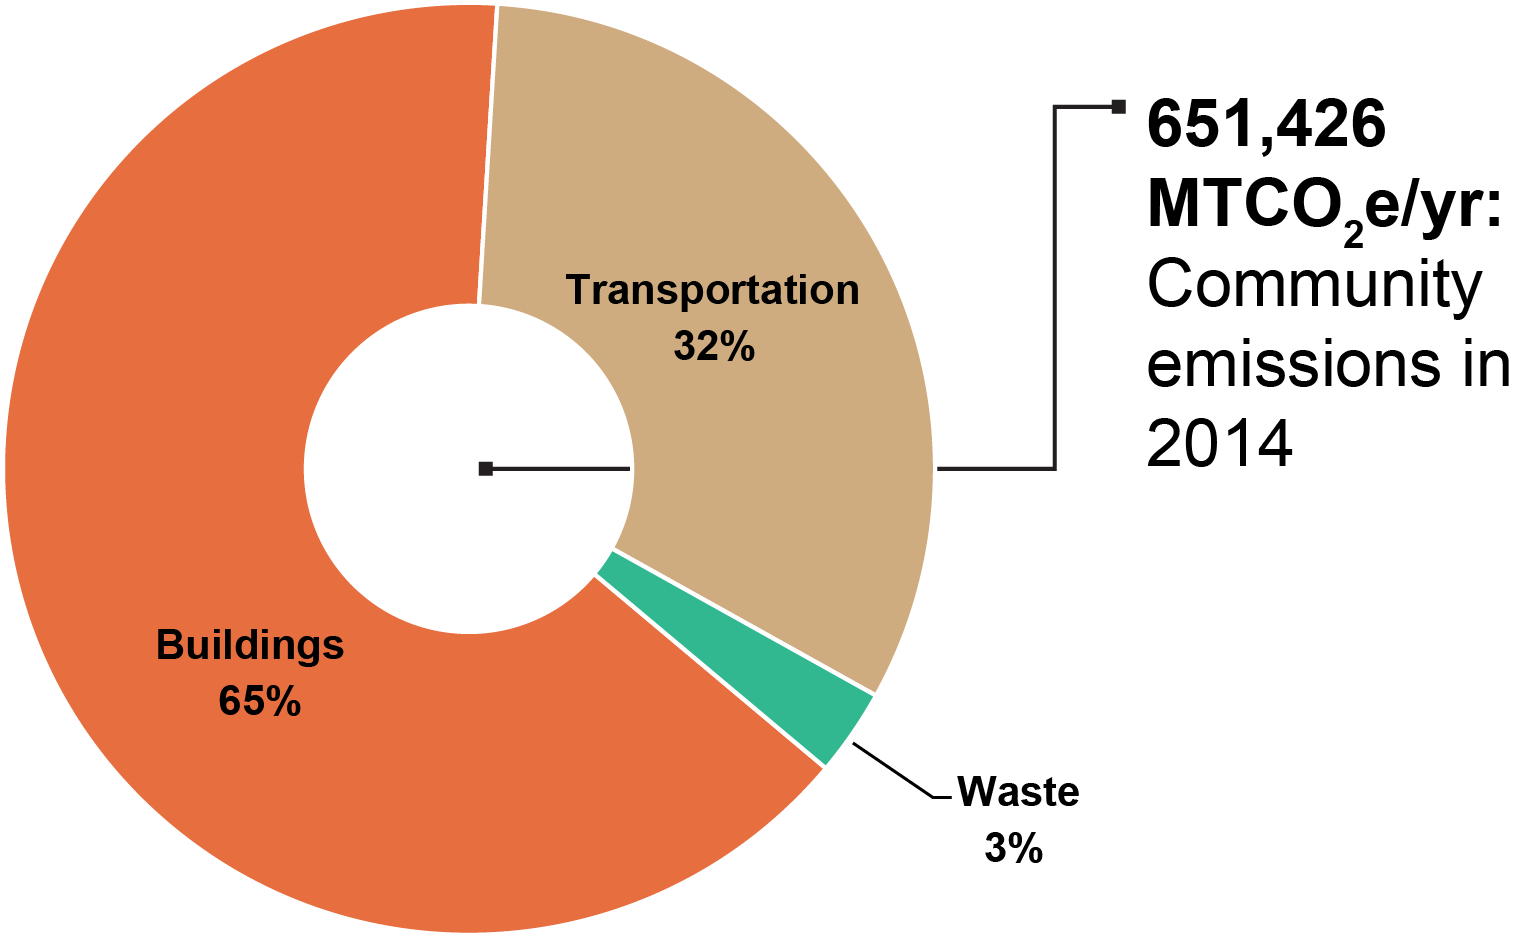 Donut chart of GHG emissions from 2014 show 65% from buildings, 32% from transportation, 3% from waste.